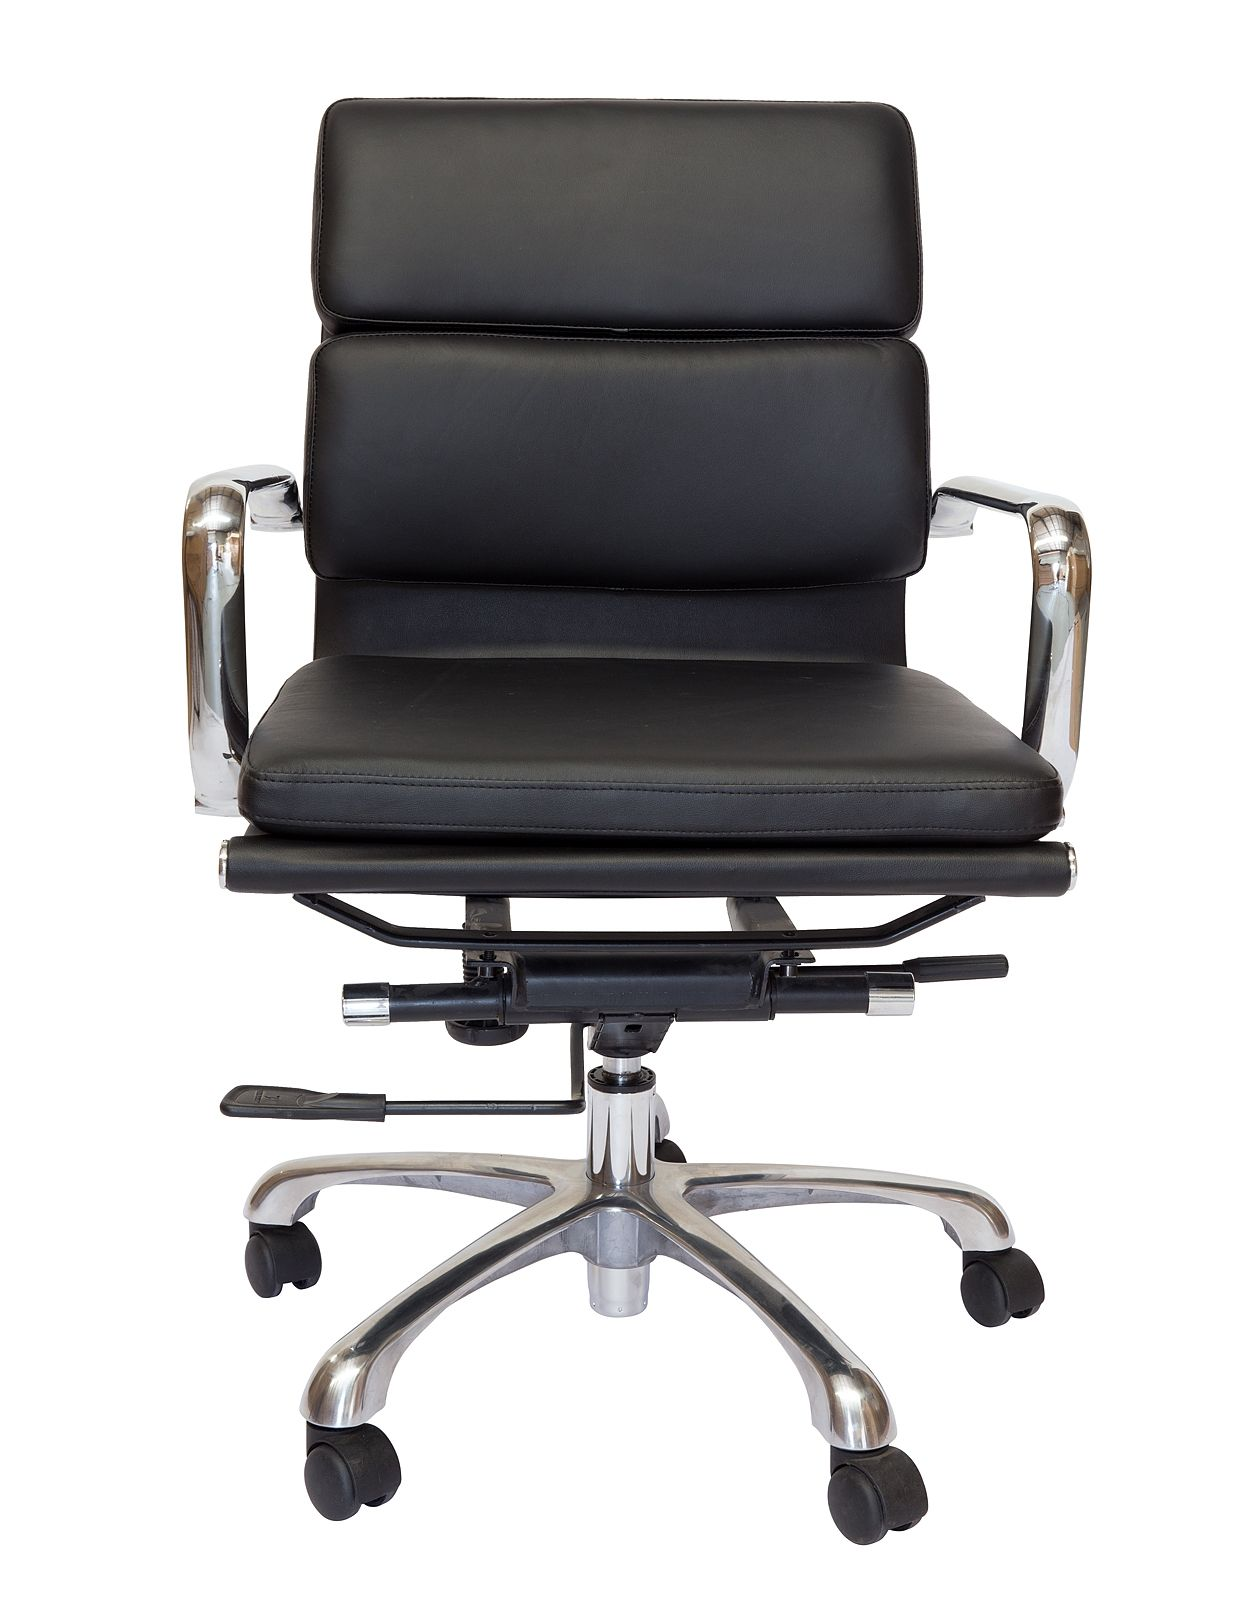 Eames Inspired Mid Back Soft Pad Management Desk / Office Chair   Black